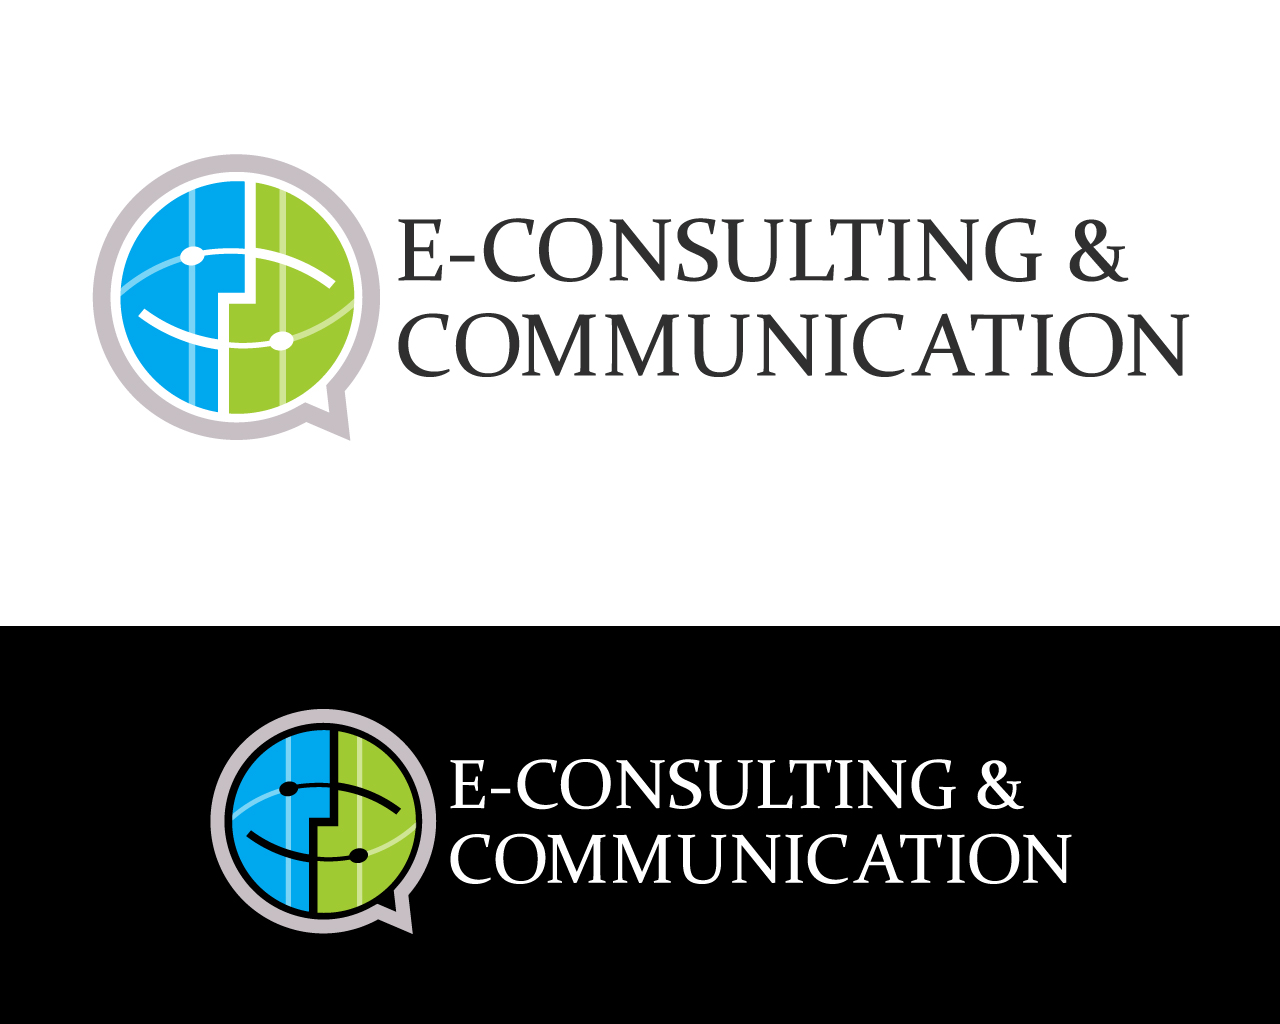 Communication logo design for e consulting by mr designer for Consulting logo design